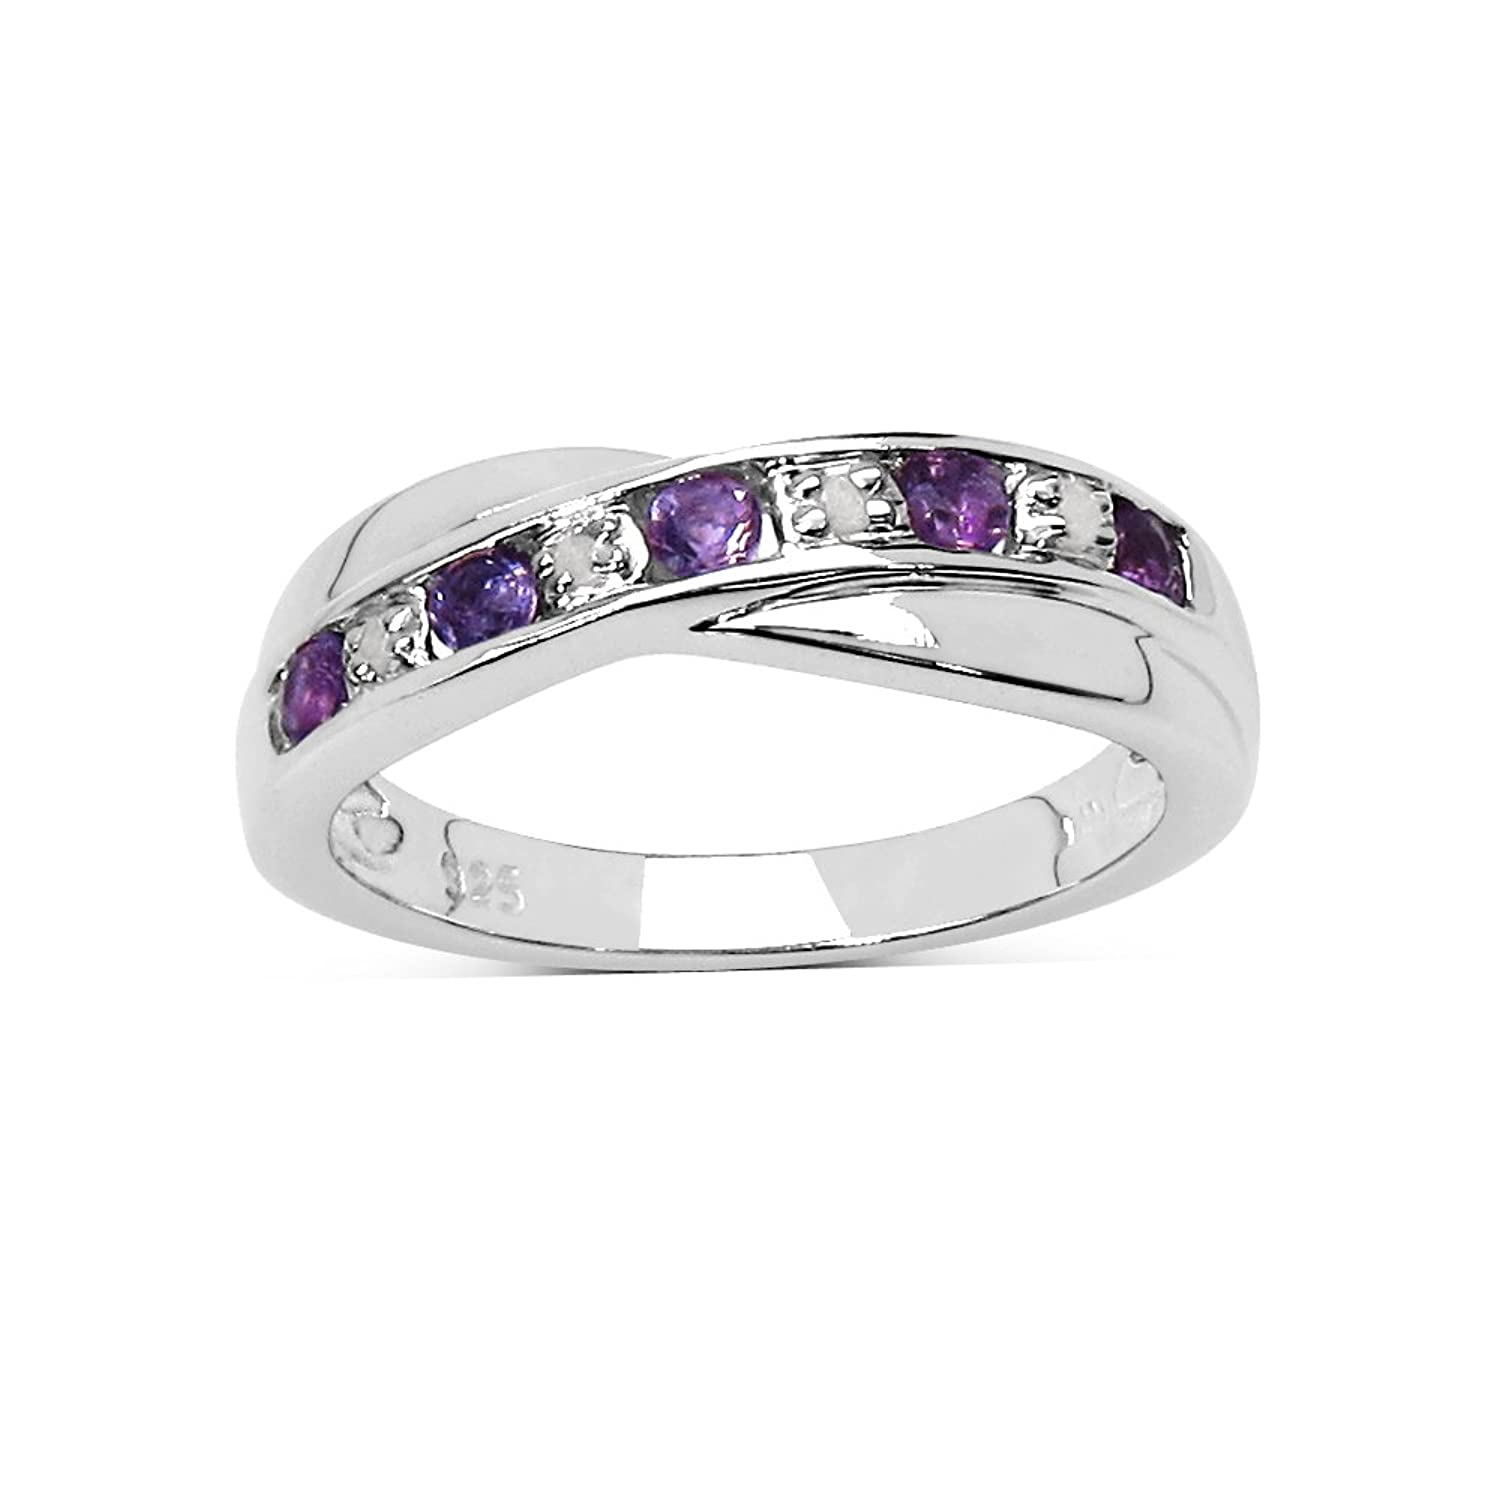 The Amethyst Ring Collection: Amethyst & Diamond Channel Set Crossover  Eternity Ring In Sterling Silver, Mother's Day, Anniversary Gift, Ring Size  H,i,j,k,l